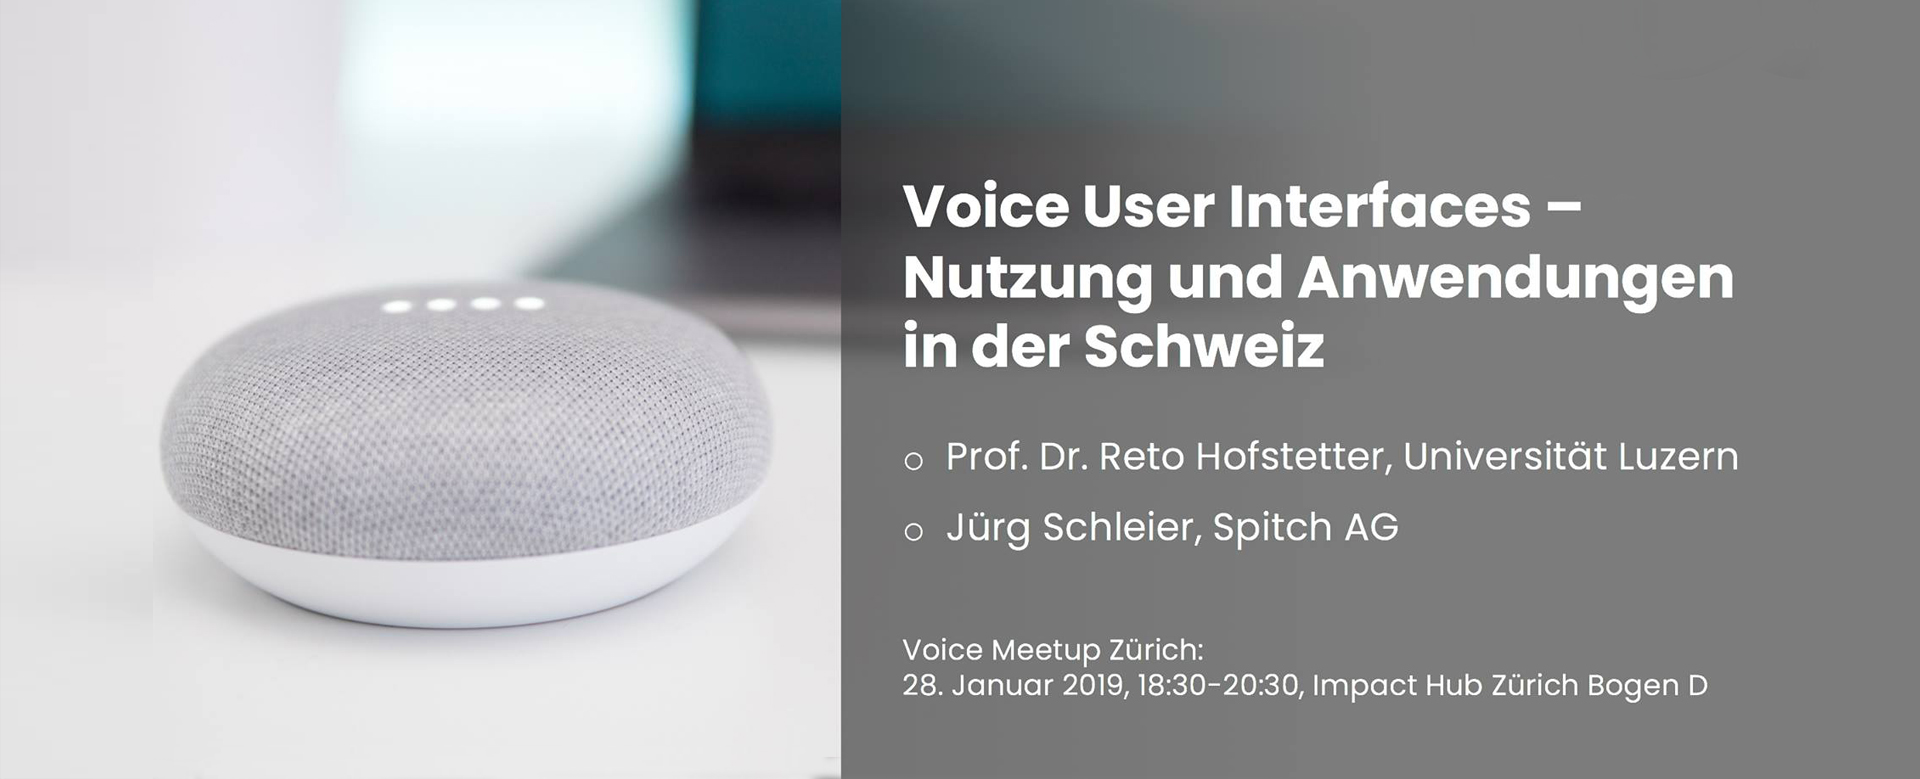 Speech Recognition for Swiss German at Voice Meetup Zurich